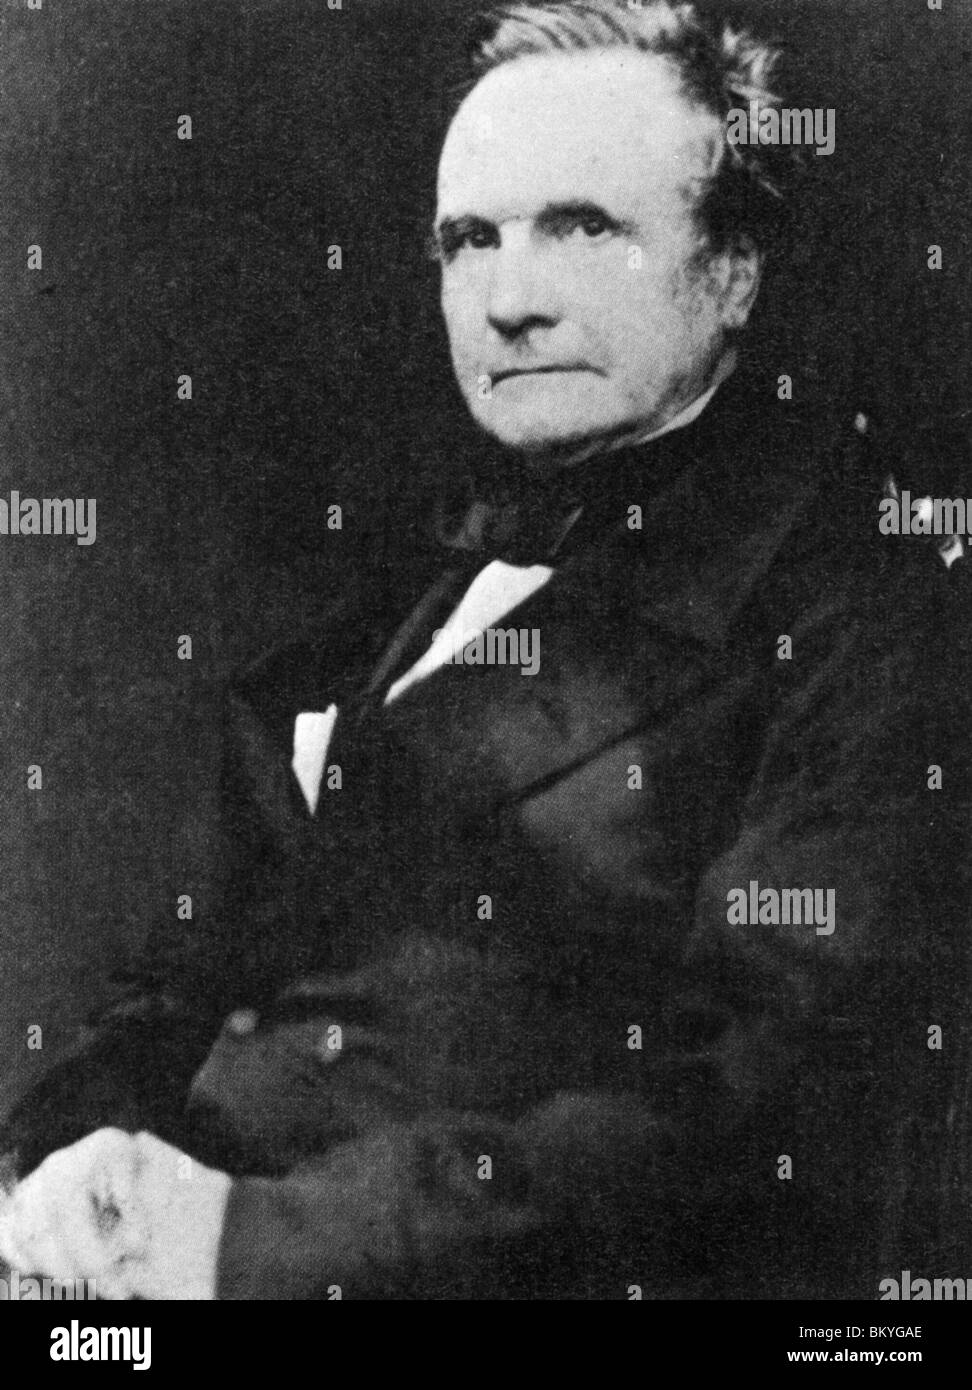 CHARLES BABBAGE (1791-1871I) English mathematician and inventor  photographed in 1860 - Stock Image